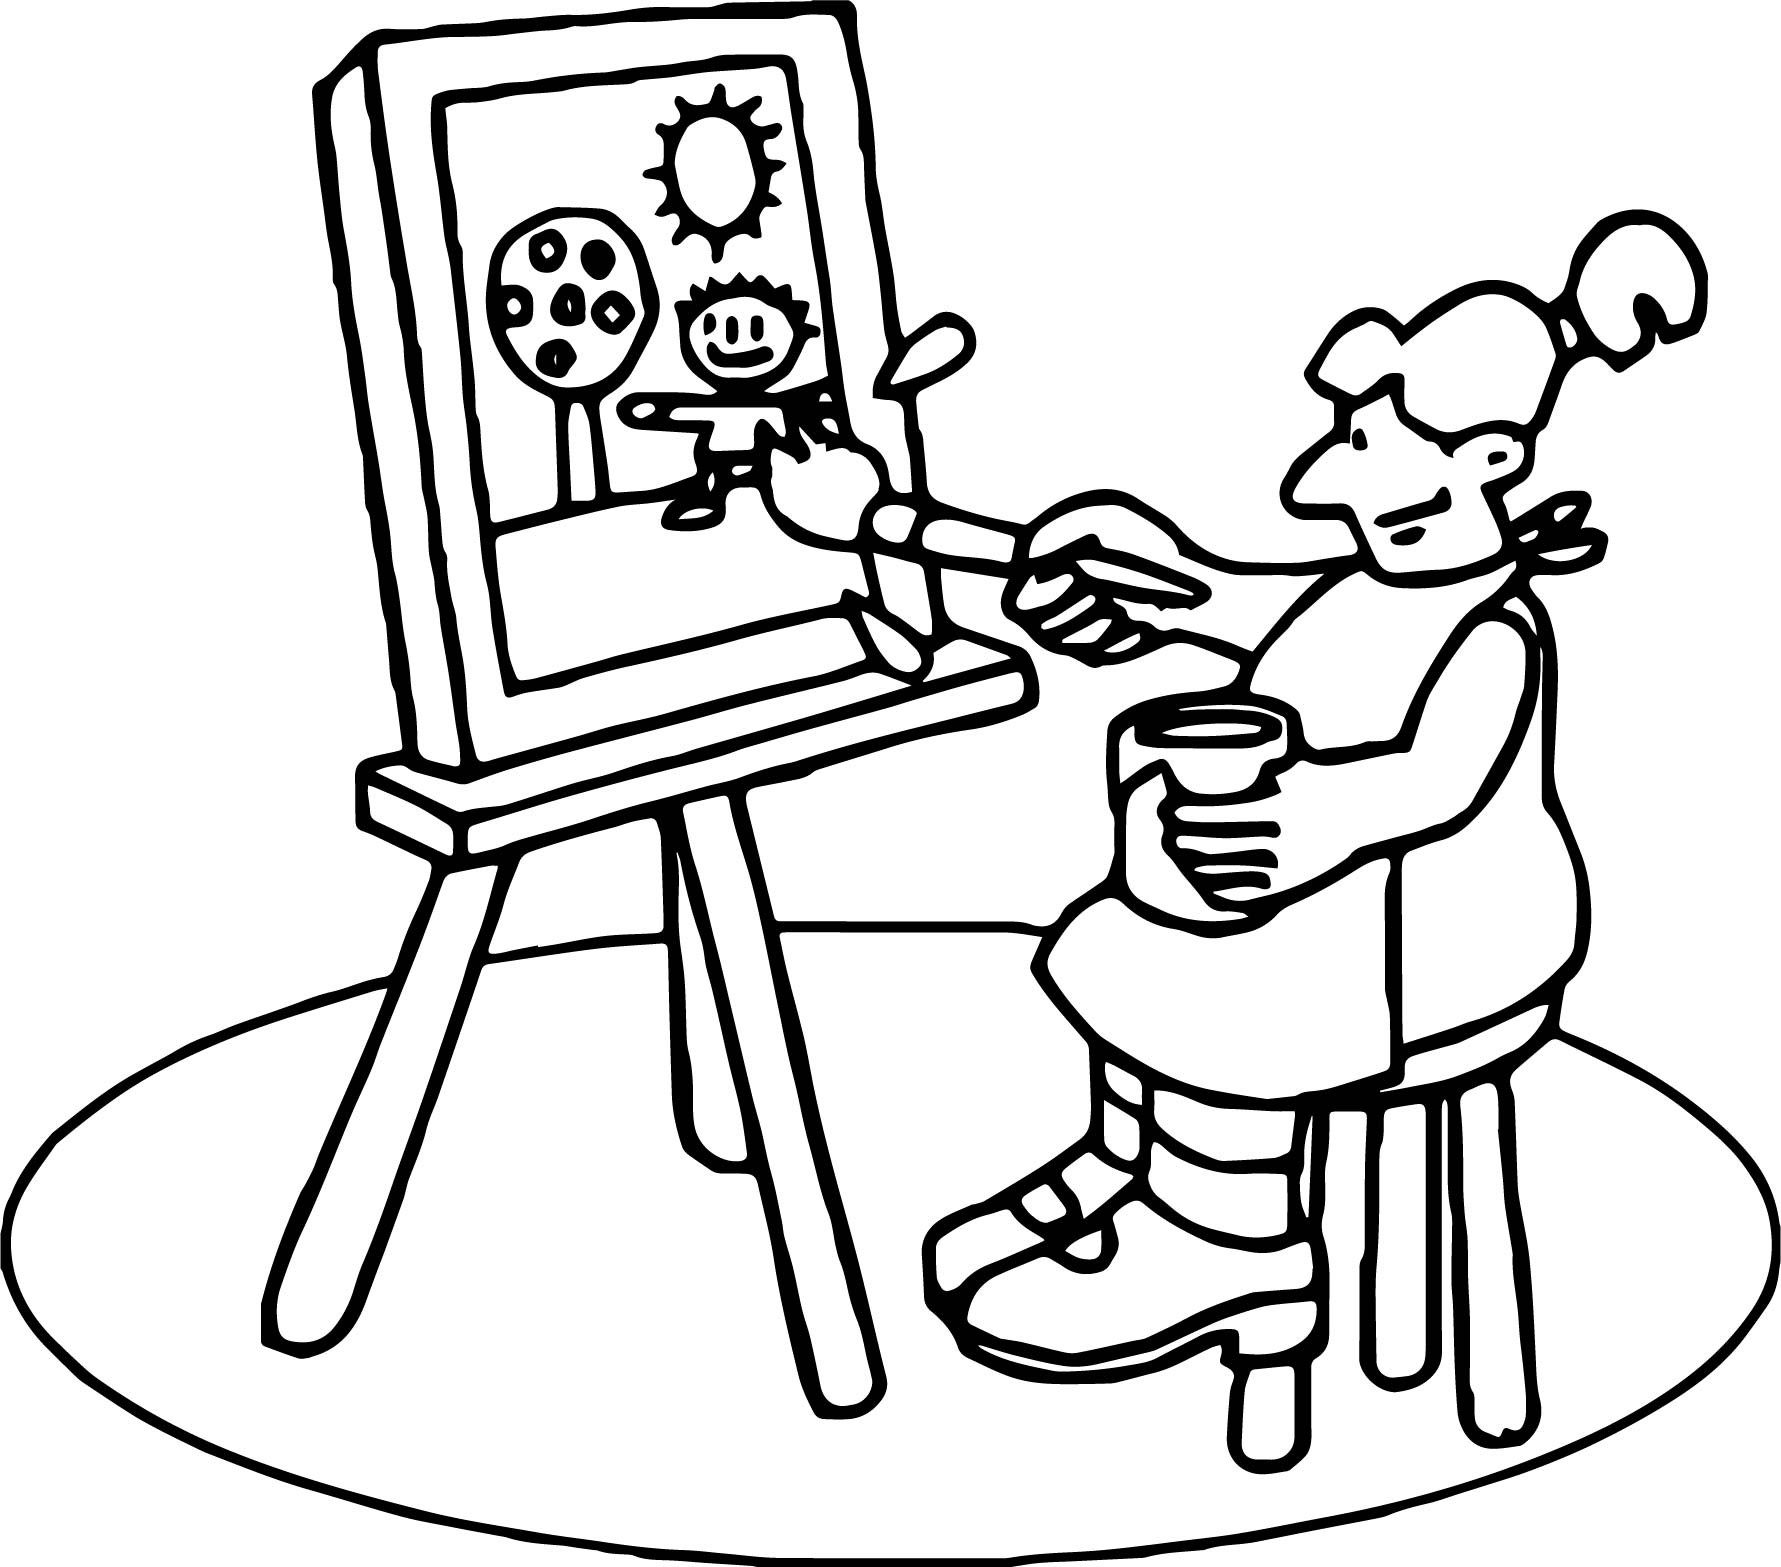 1781x1567 School Pen Coloring Page Inspirational Art Class Painting Coloring